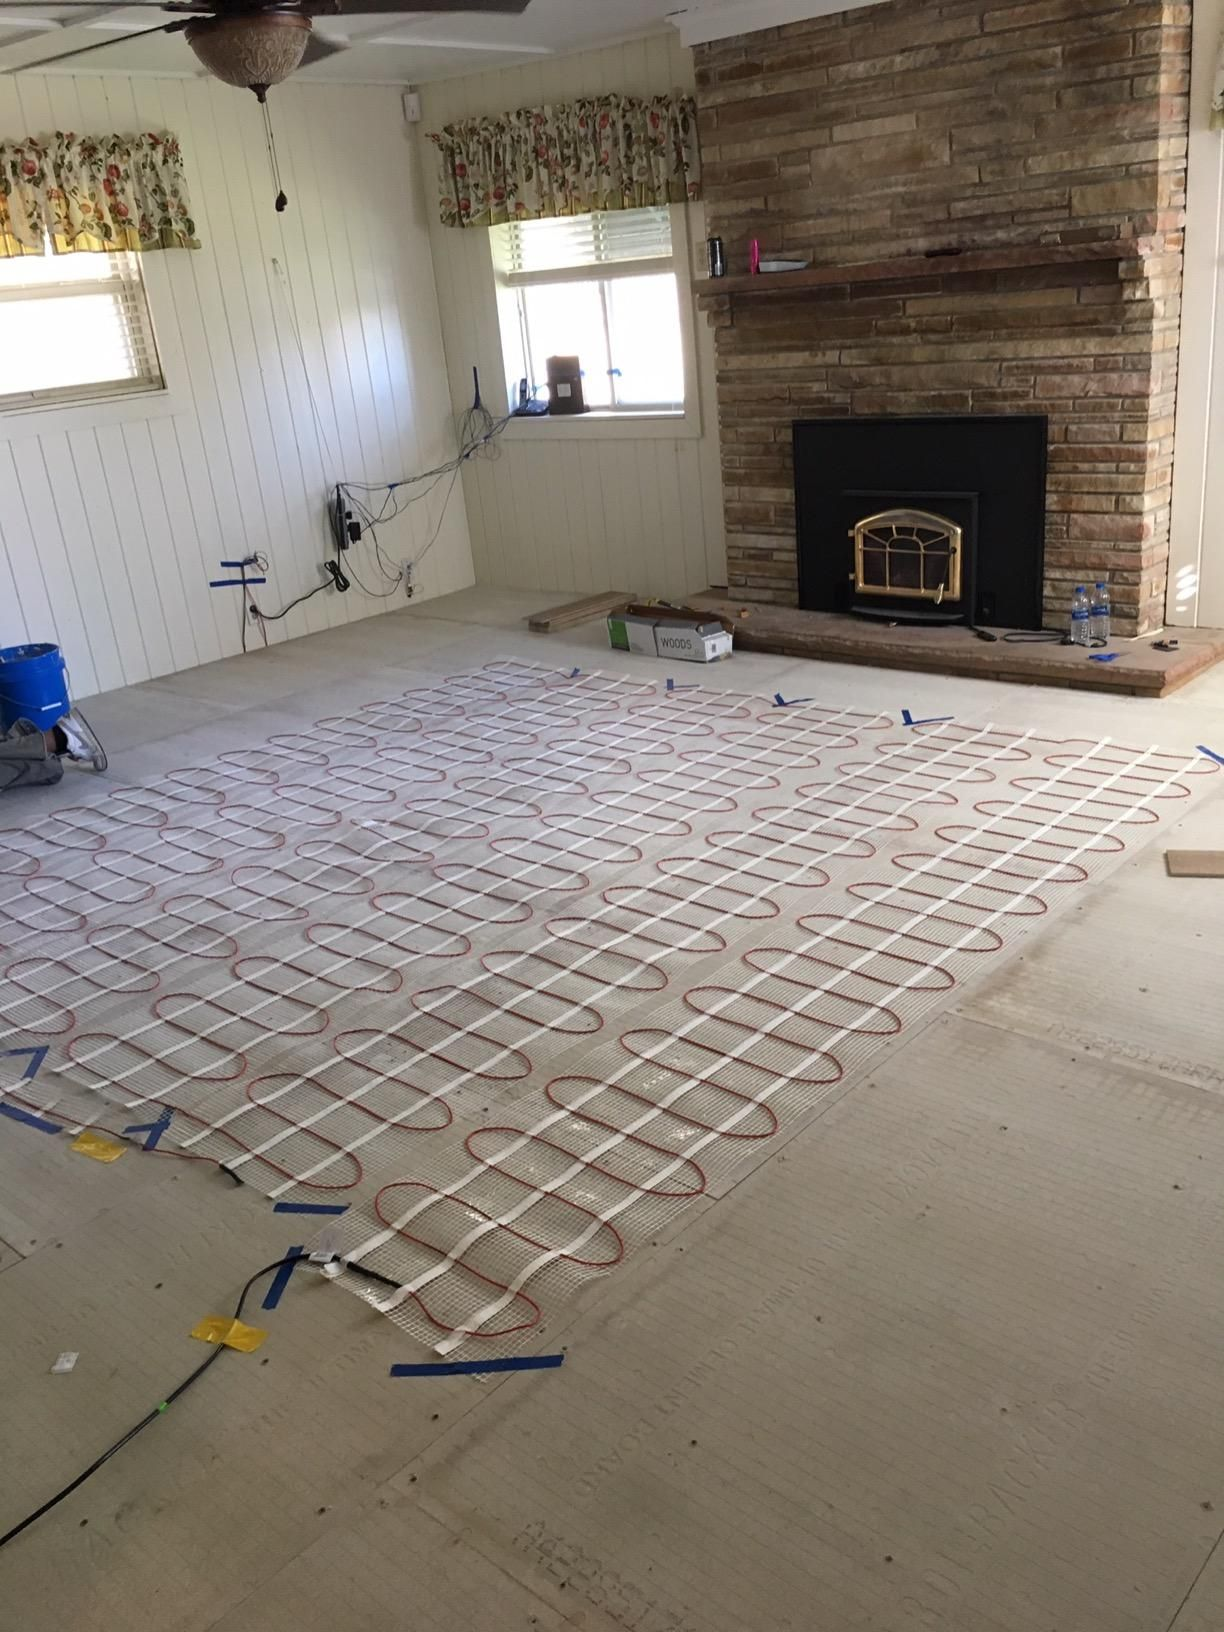 Best Radiant Floor Heating Reviews In 2020 Radiant Floor Radiant Floor Heating Floor Heating Systems